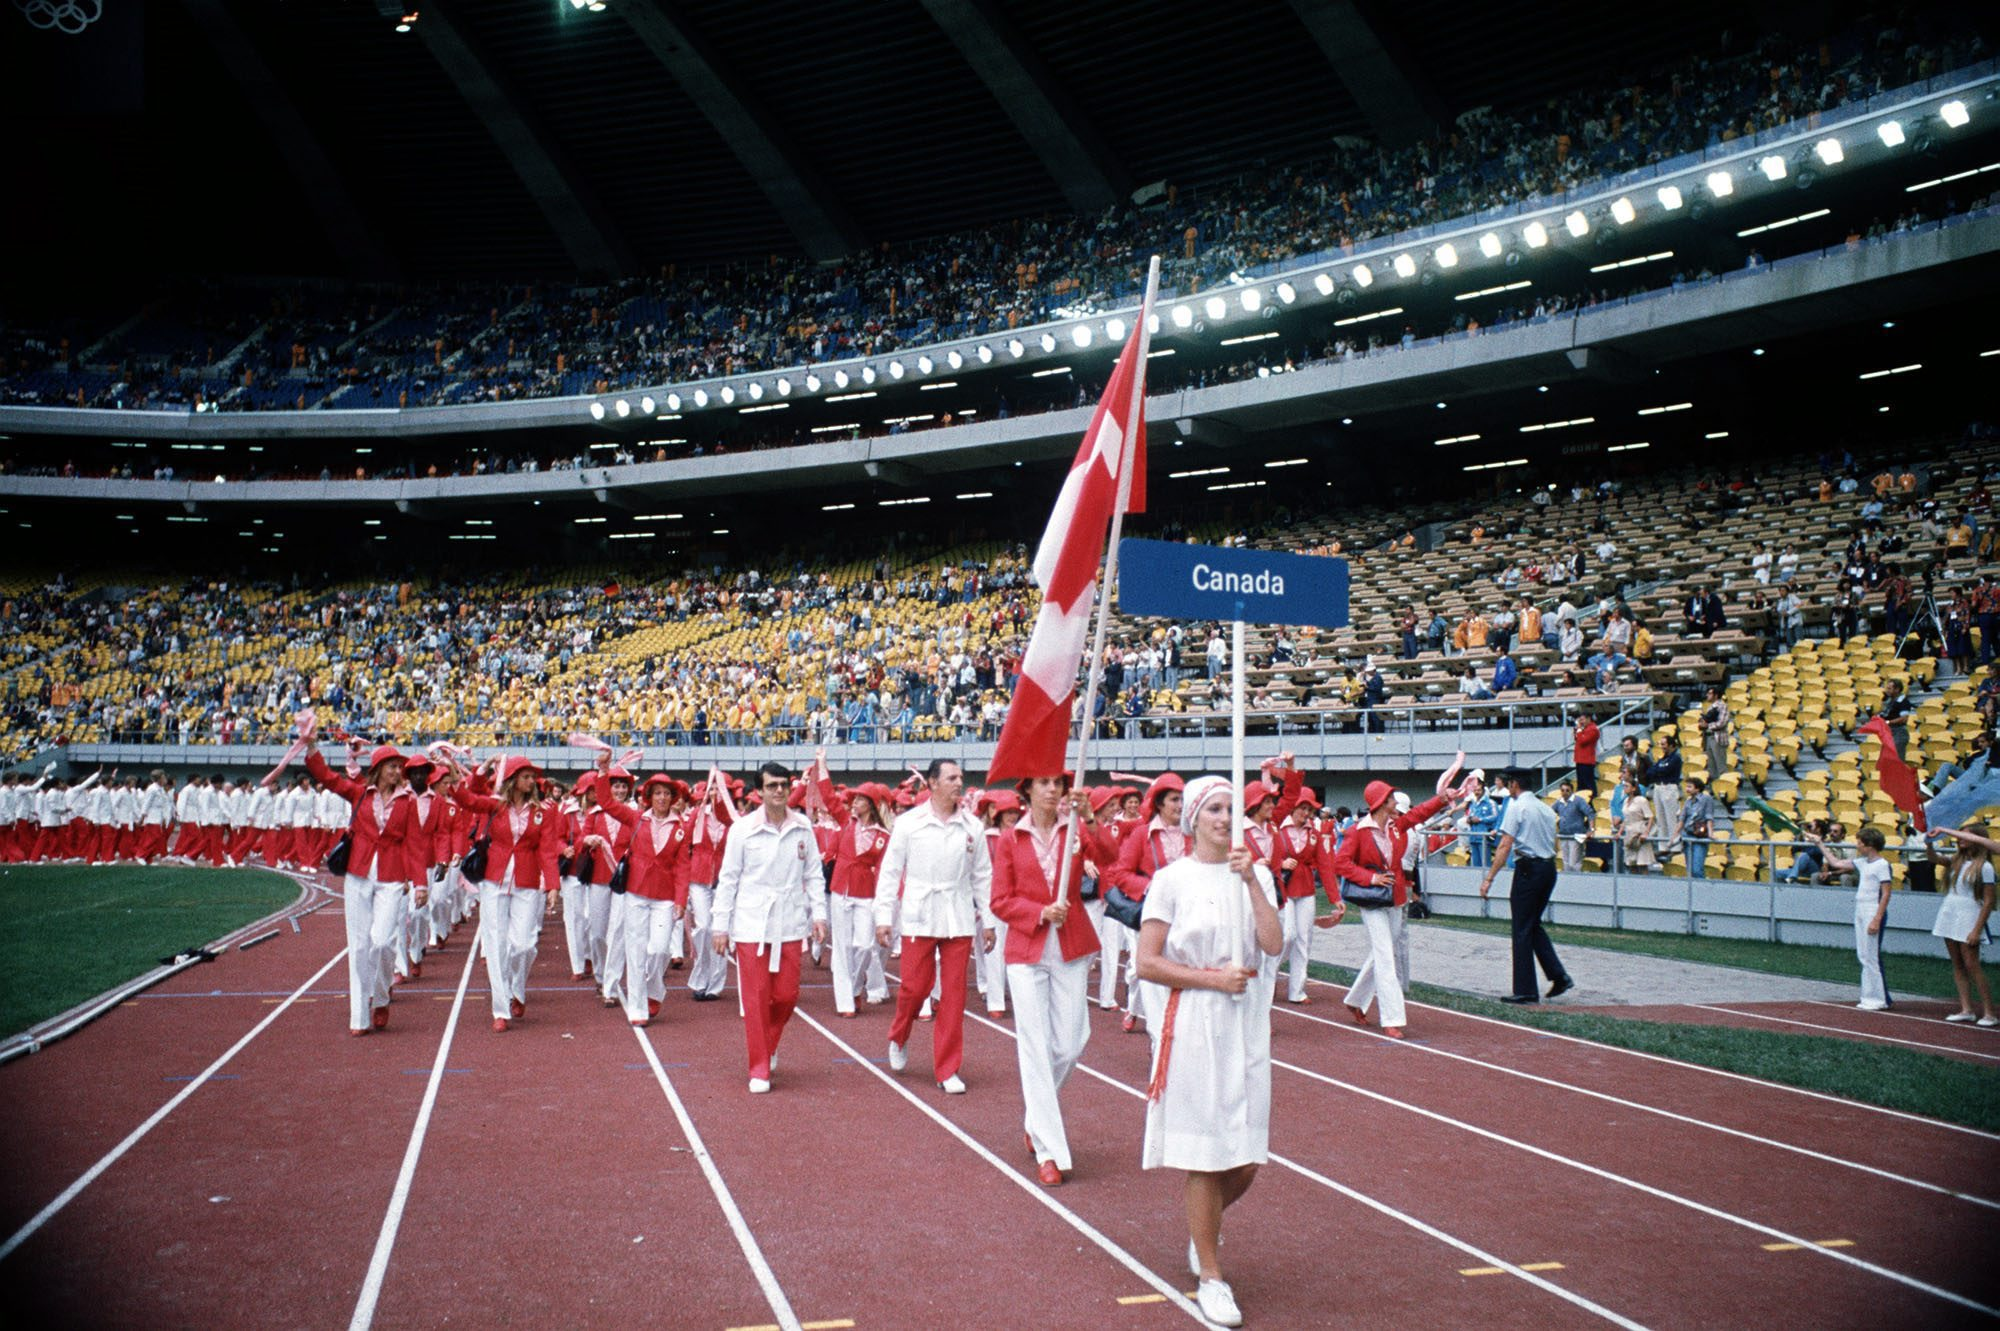 Abby Hoffman carries the Canadian Flag as she leads her team into the Olympic stadium in Montreal July 17, 1976 during the opening ceremonies for the games. Hoffman, 29, from Toronto, will compete in the 800 meter run. (CP PHOTO/ file)